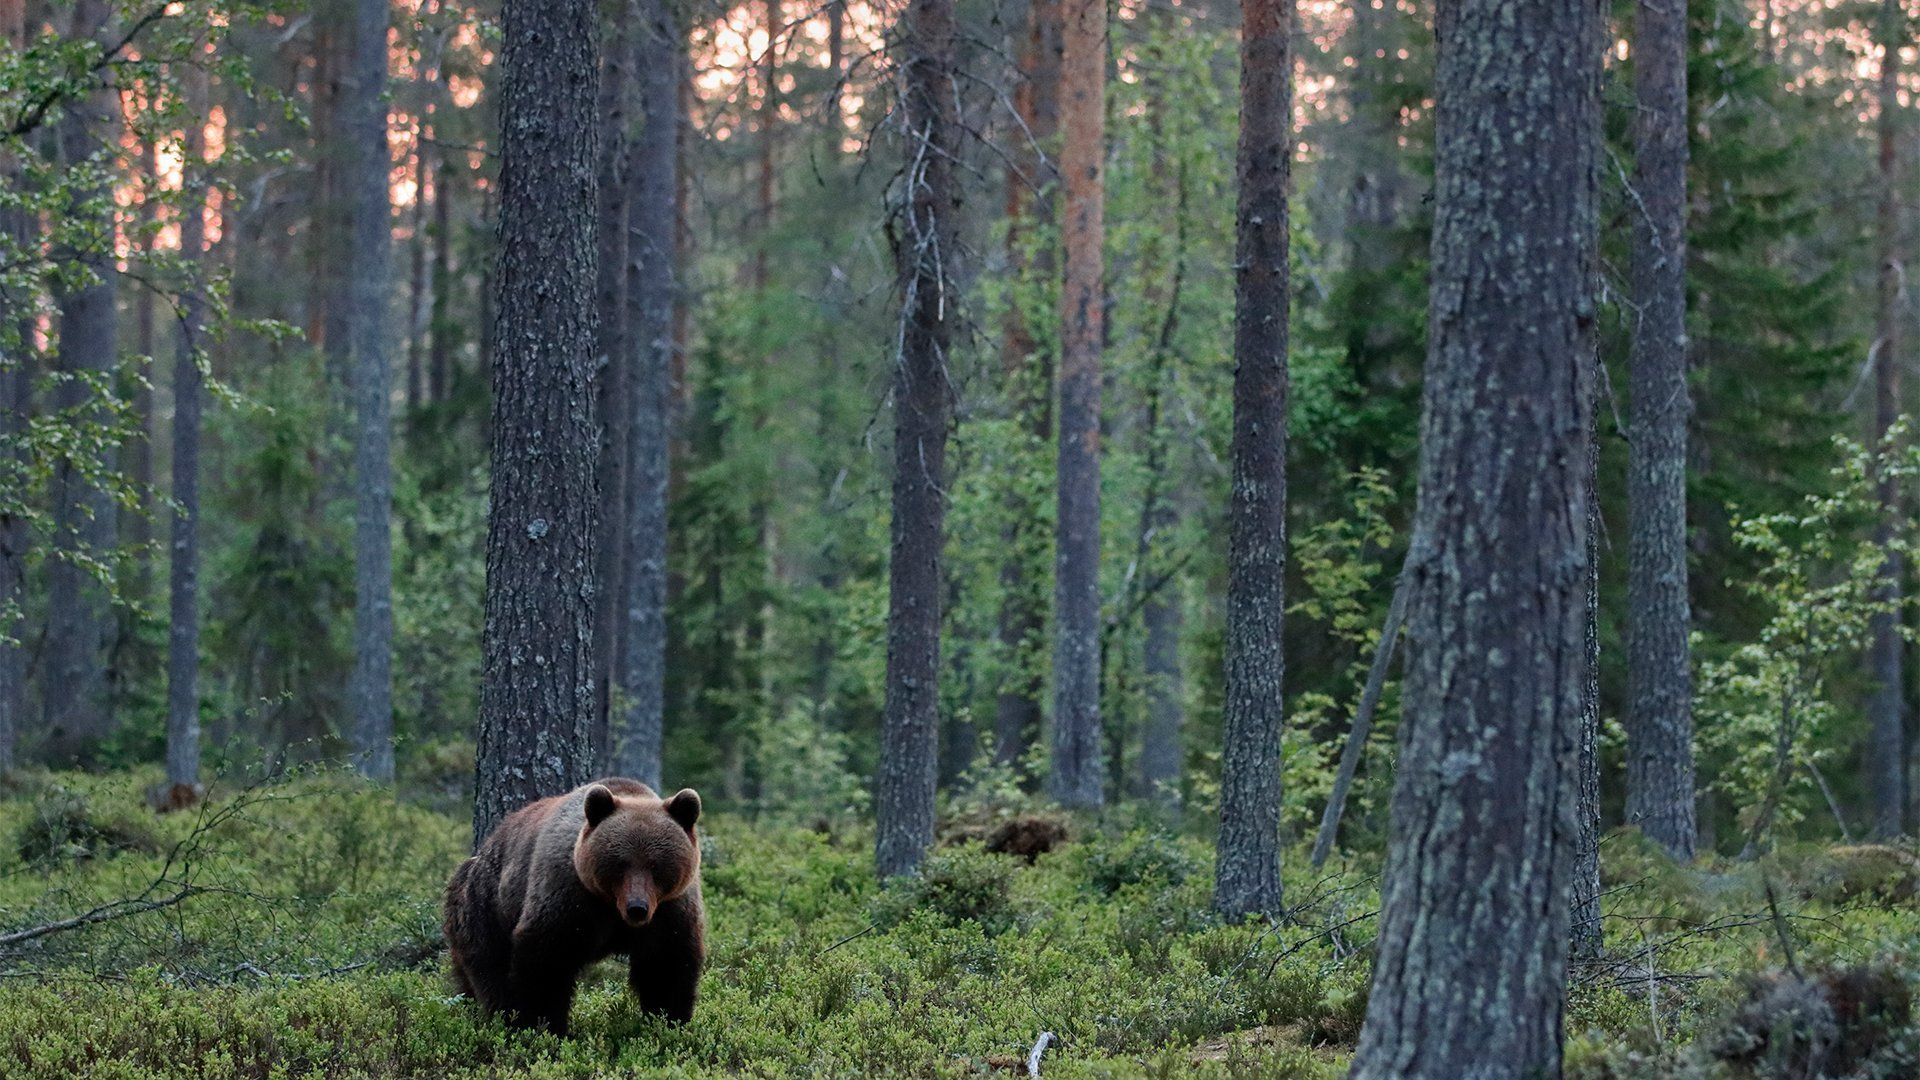 A brown bear in a wood, photographed with a Canon EOS 90D.